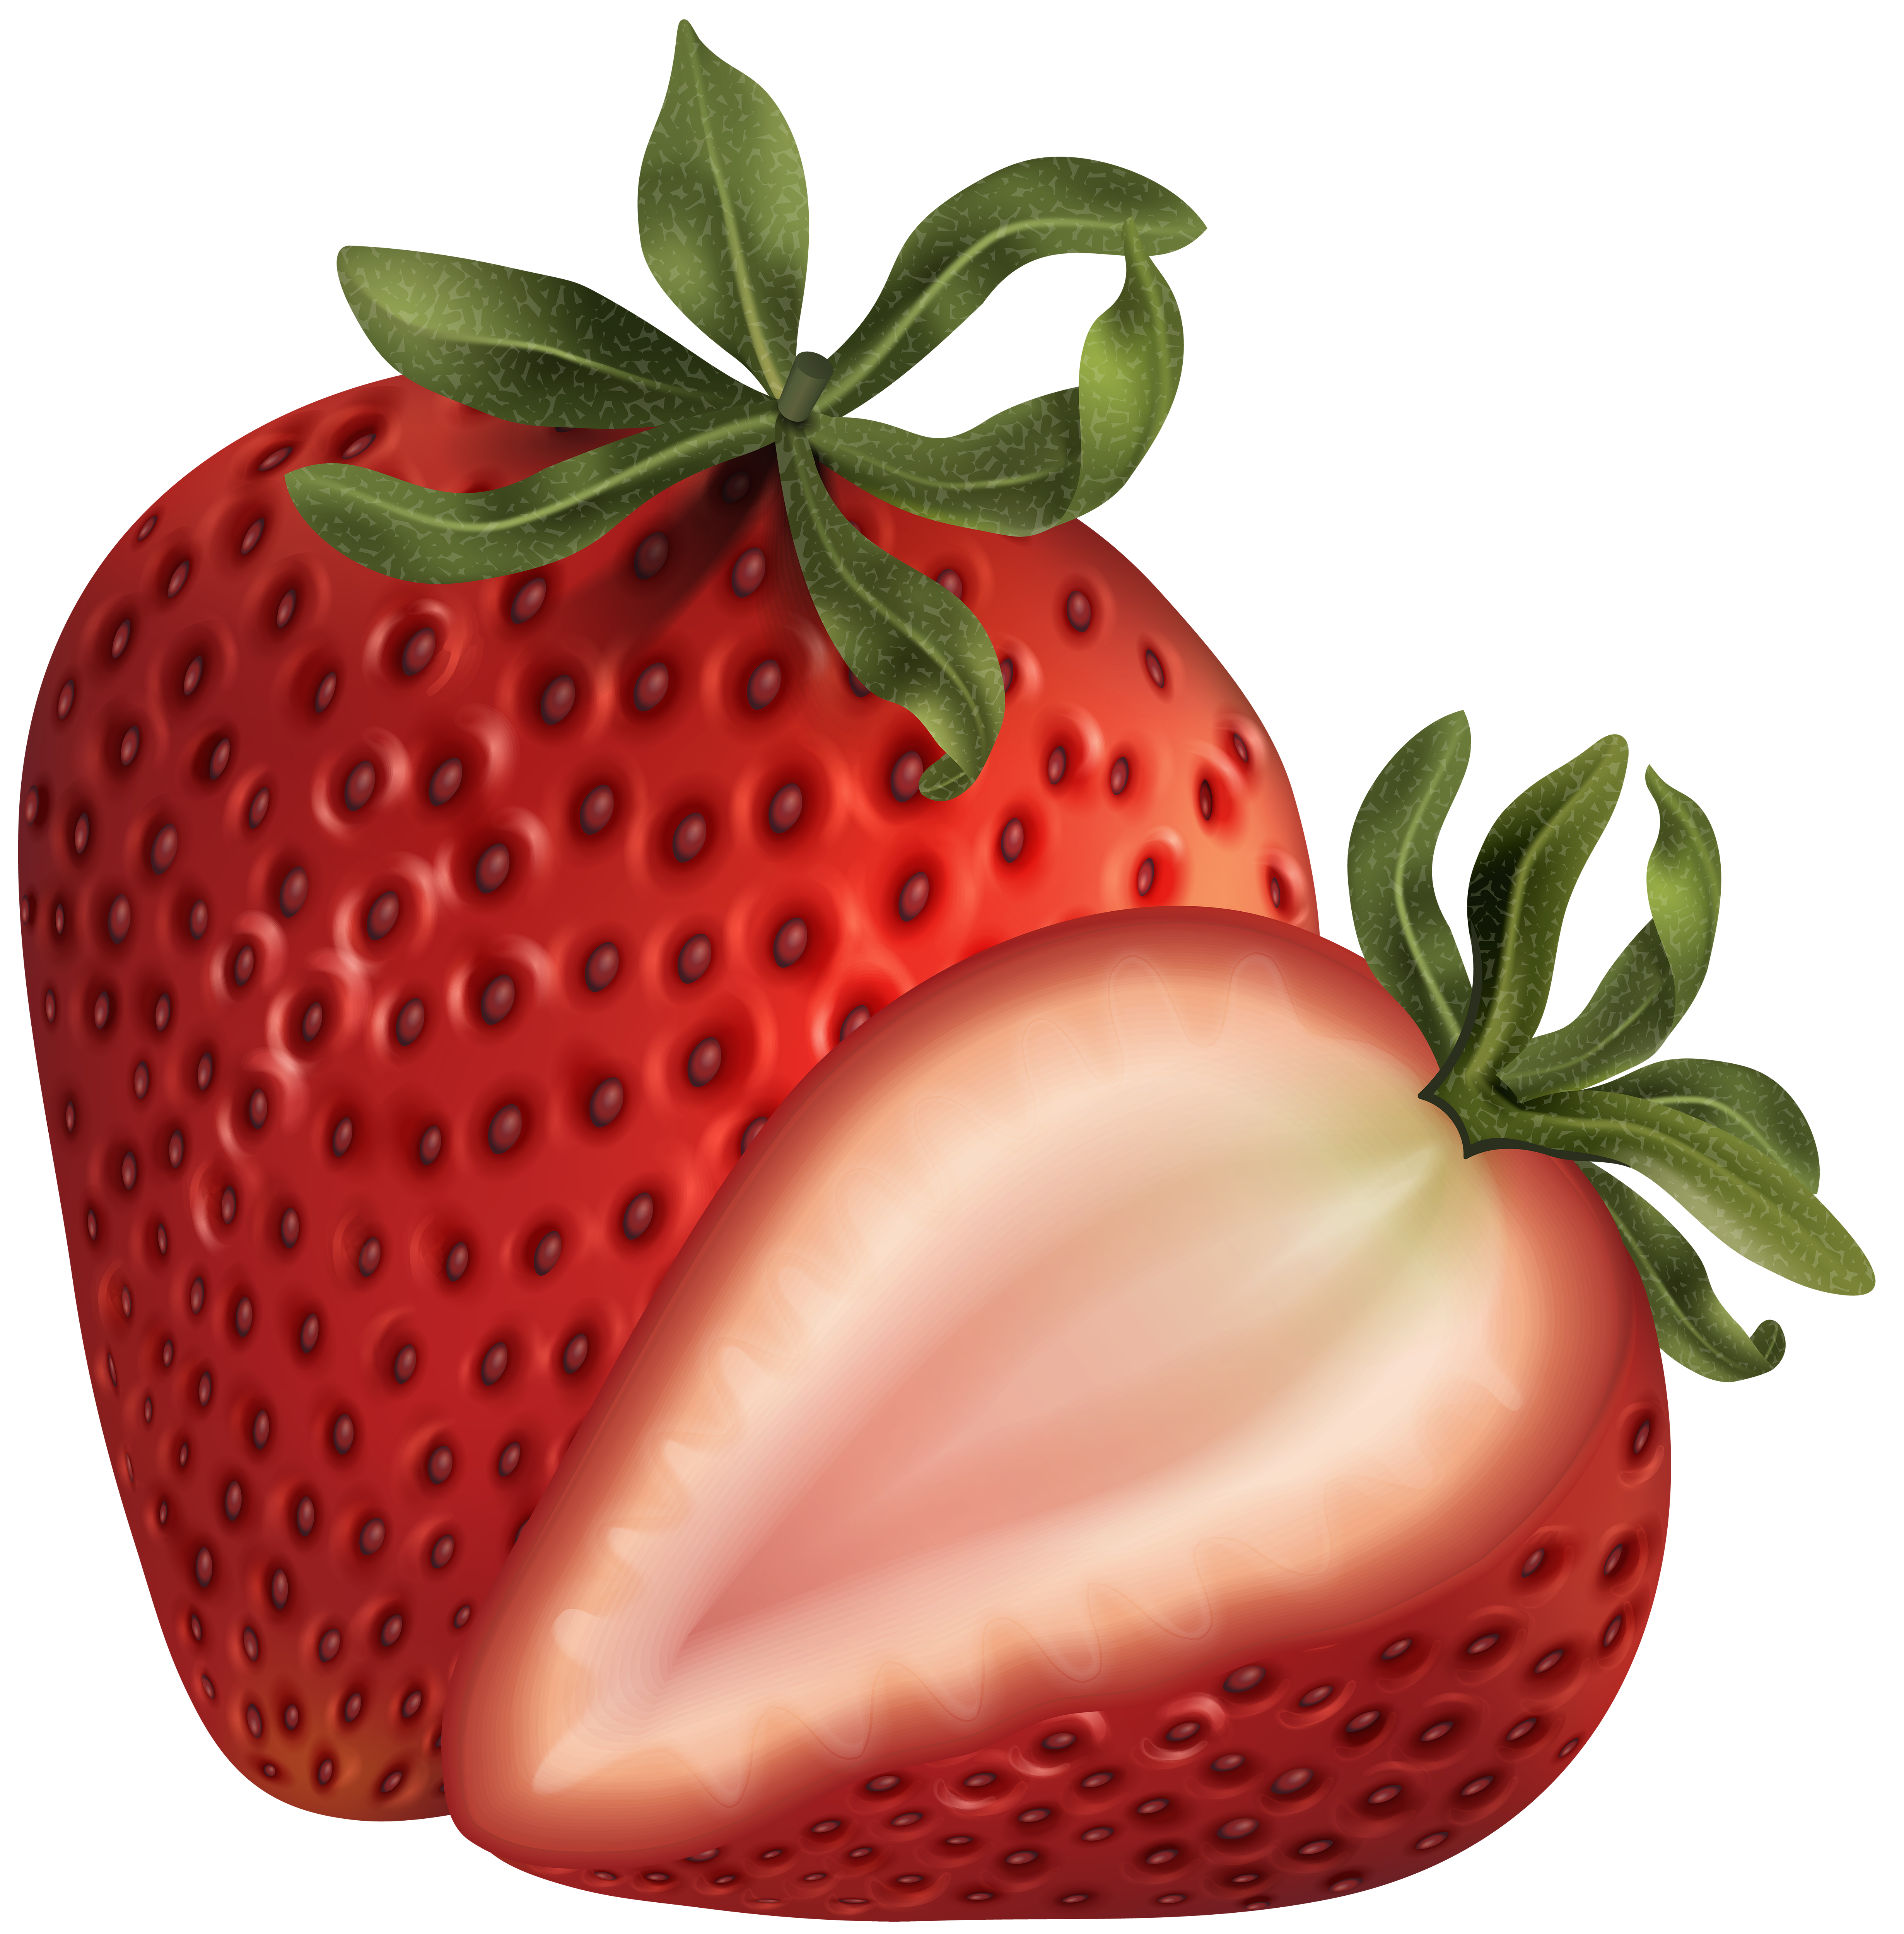 Strawberry png clip art. Strawberries clipart banner